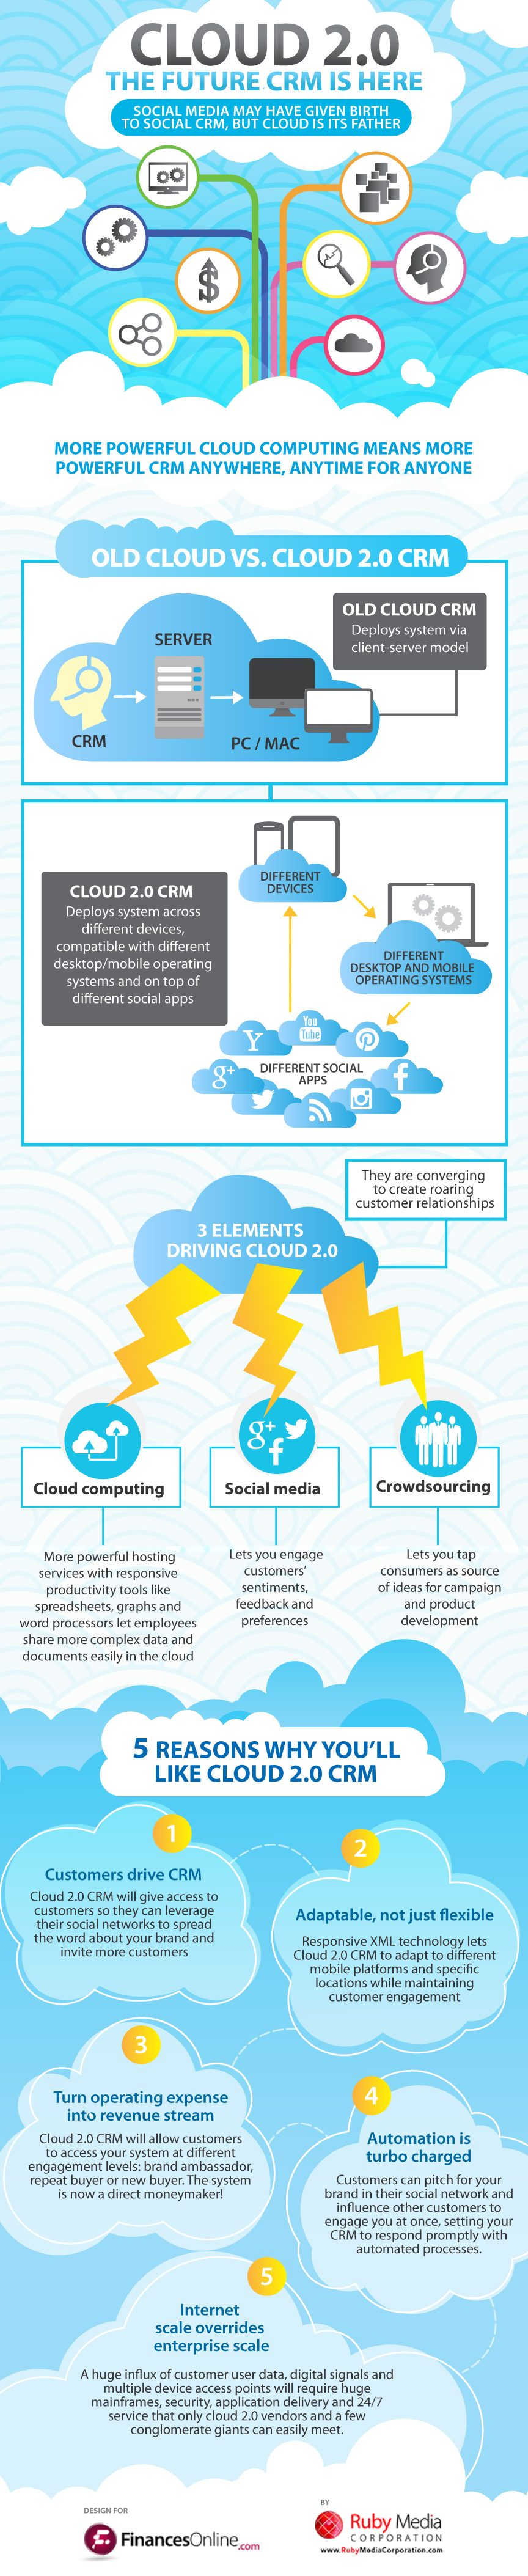 What is Cloud 2.0 CRM Software